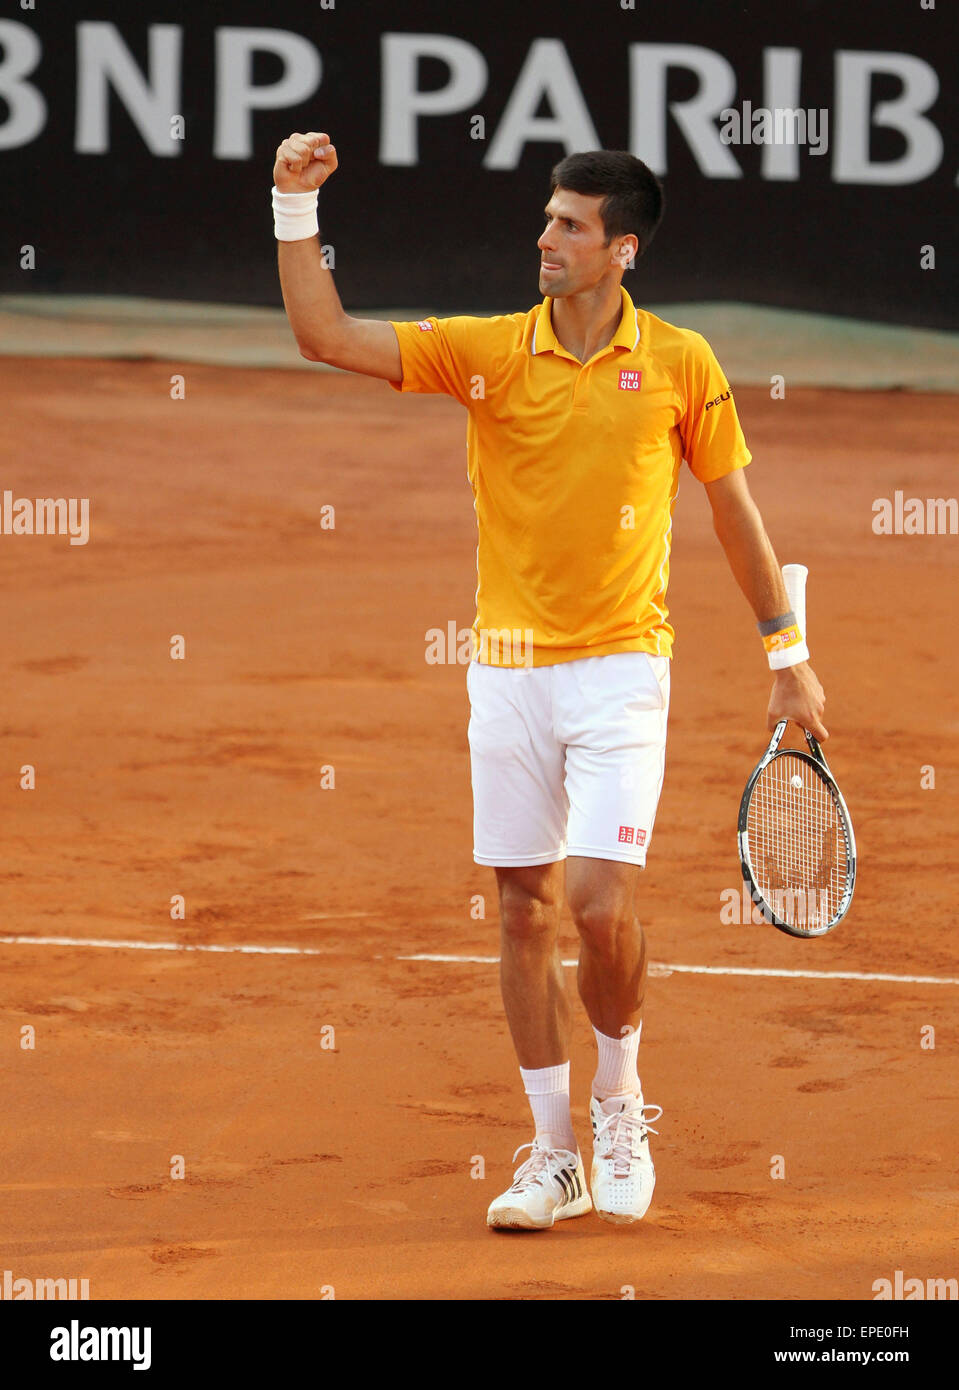 Rome, Italy. 17th May, 2015. Novak Djokovic of Serbia  celebrates winner during the singles final match  against - Stock Image